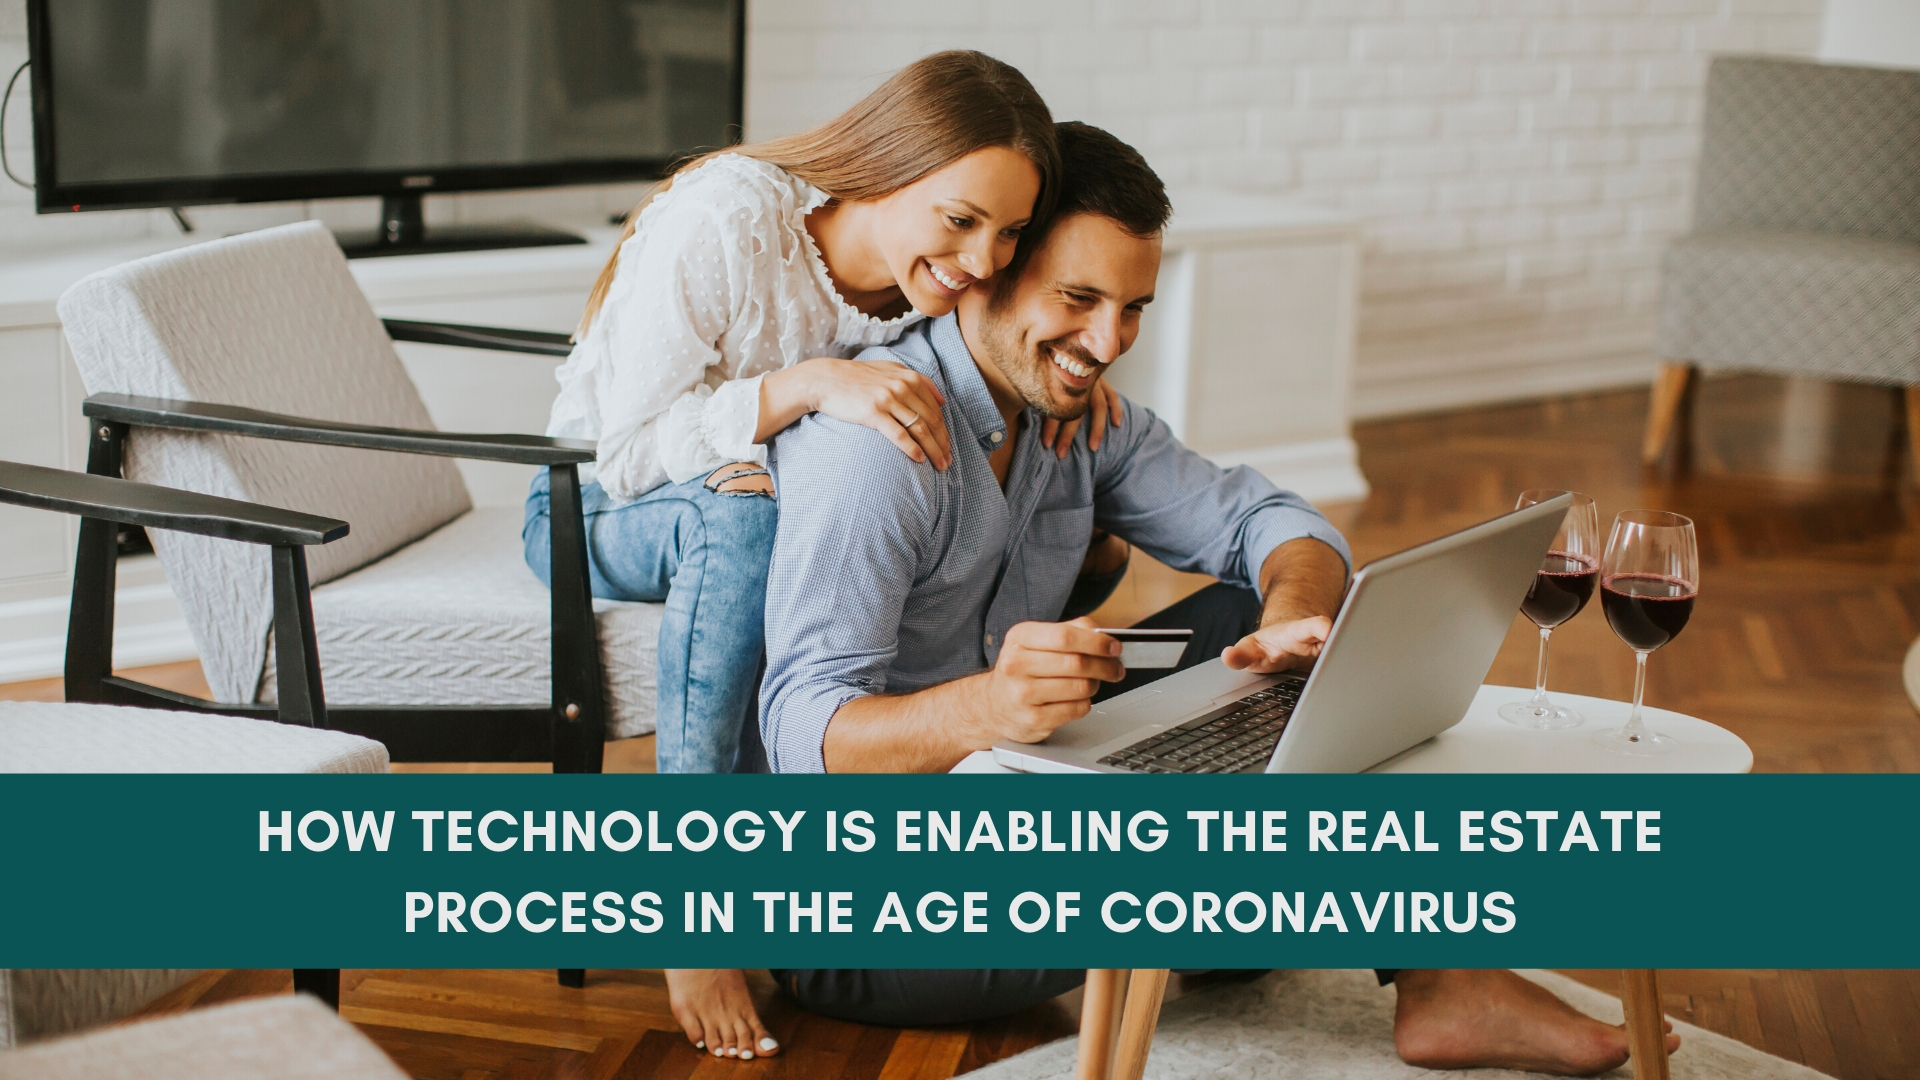 technology is enabling the real estate process in the age of Coronavirus